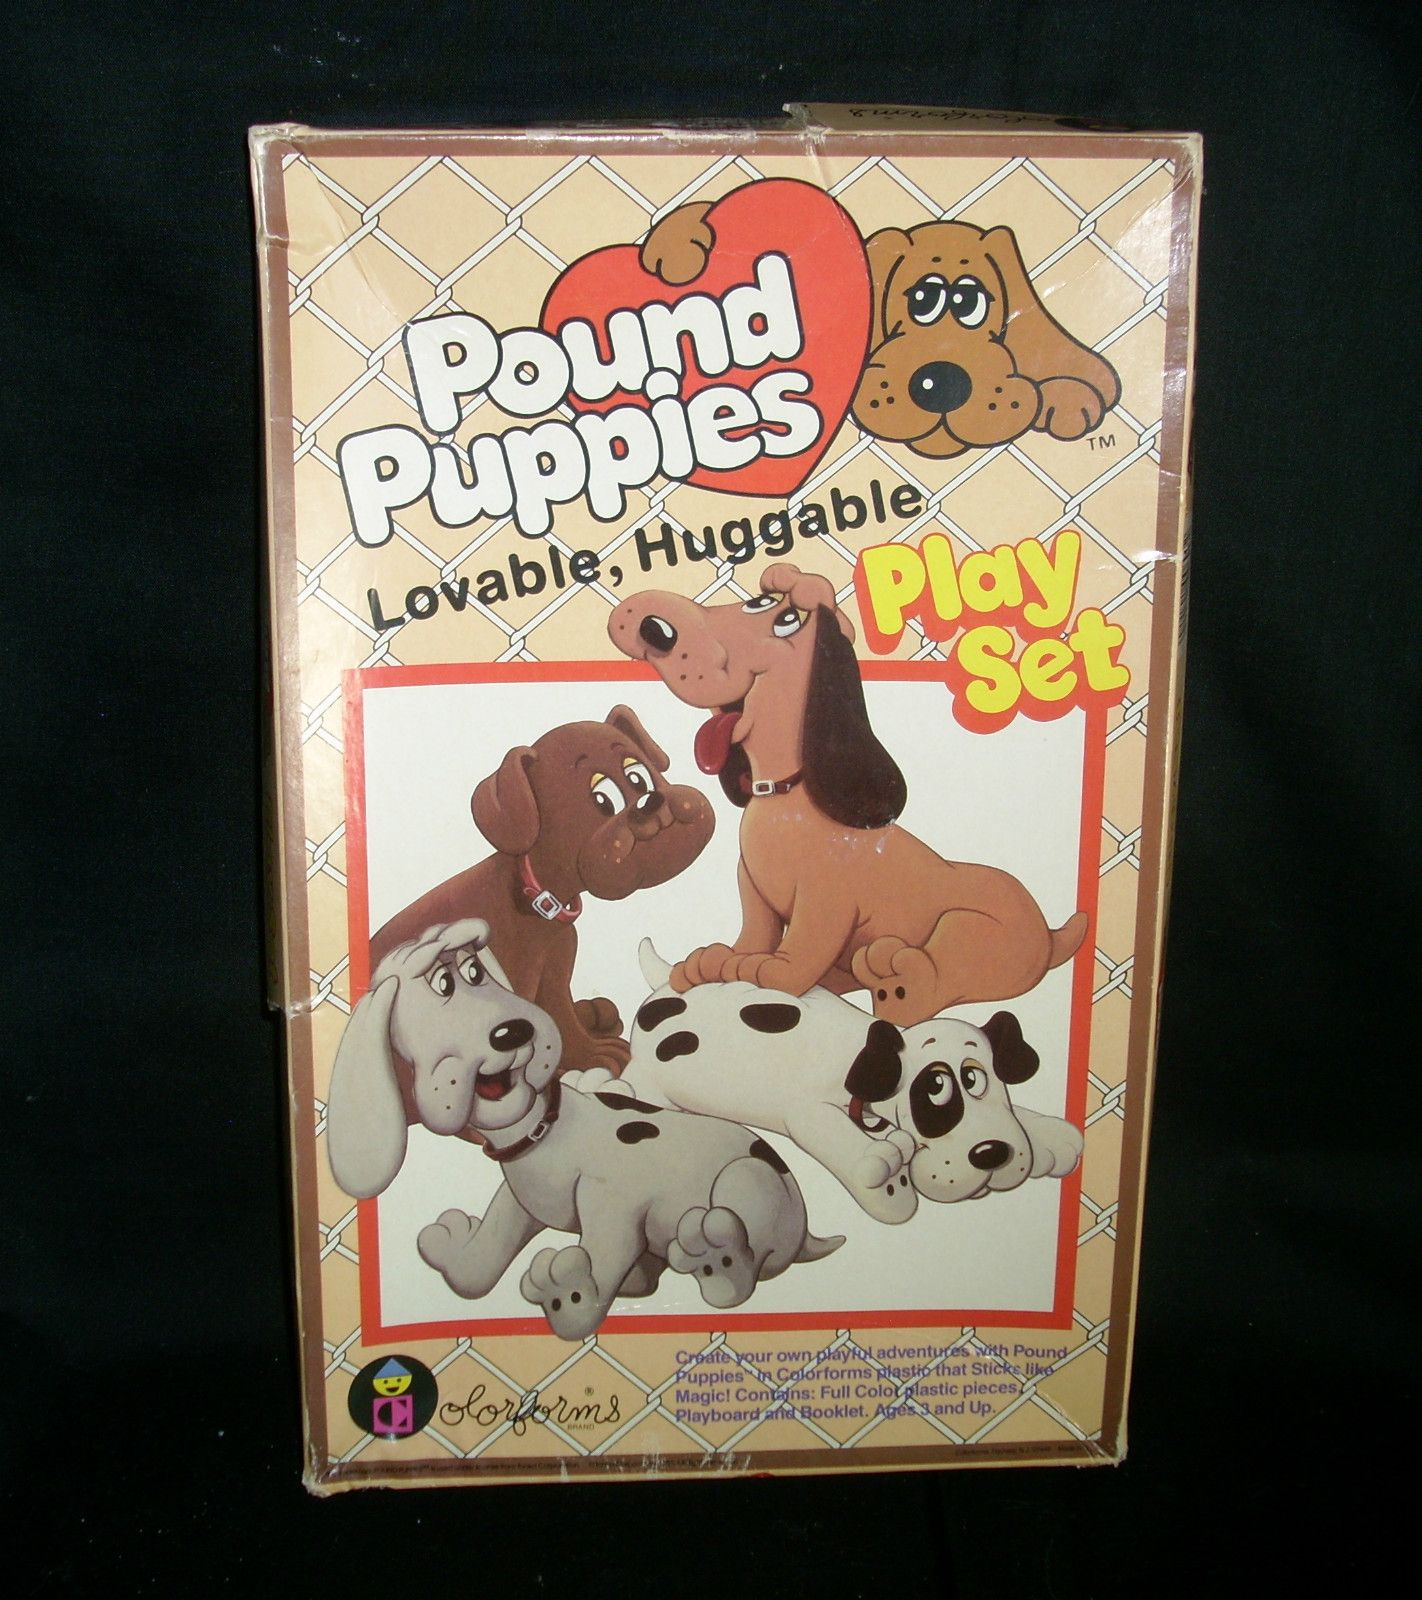 VINTAGE 1980s POUND PUPPIES PUPPY COLORFORMS PLAY SET